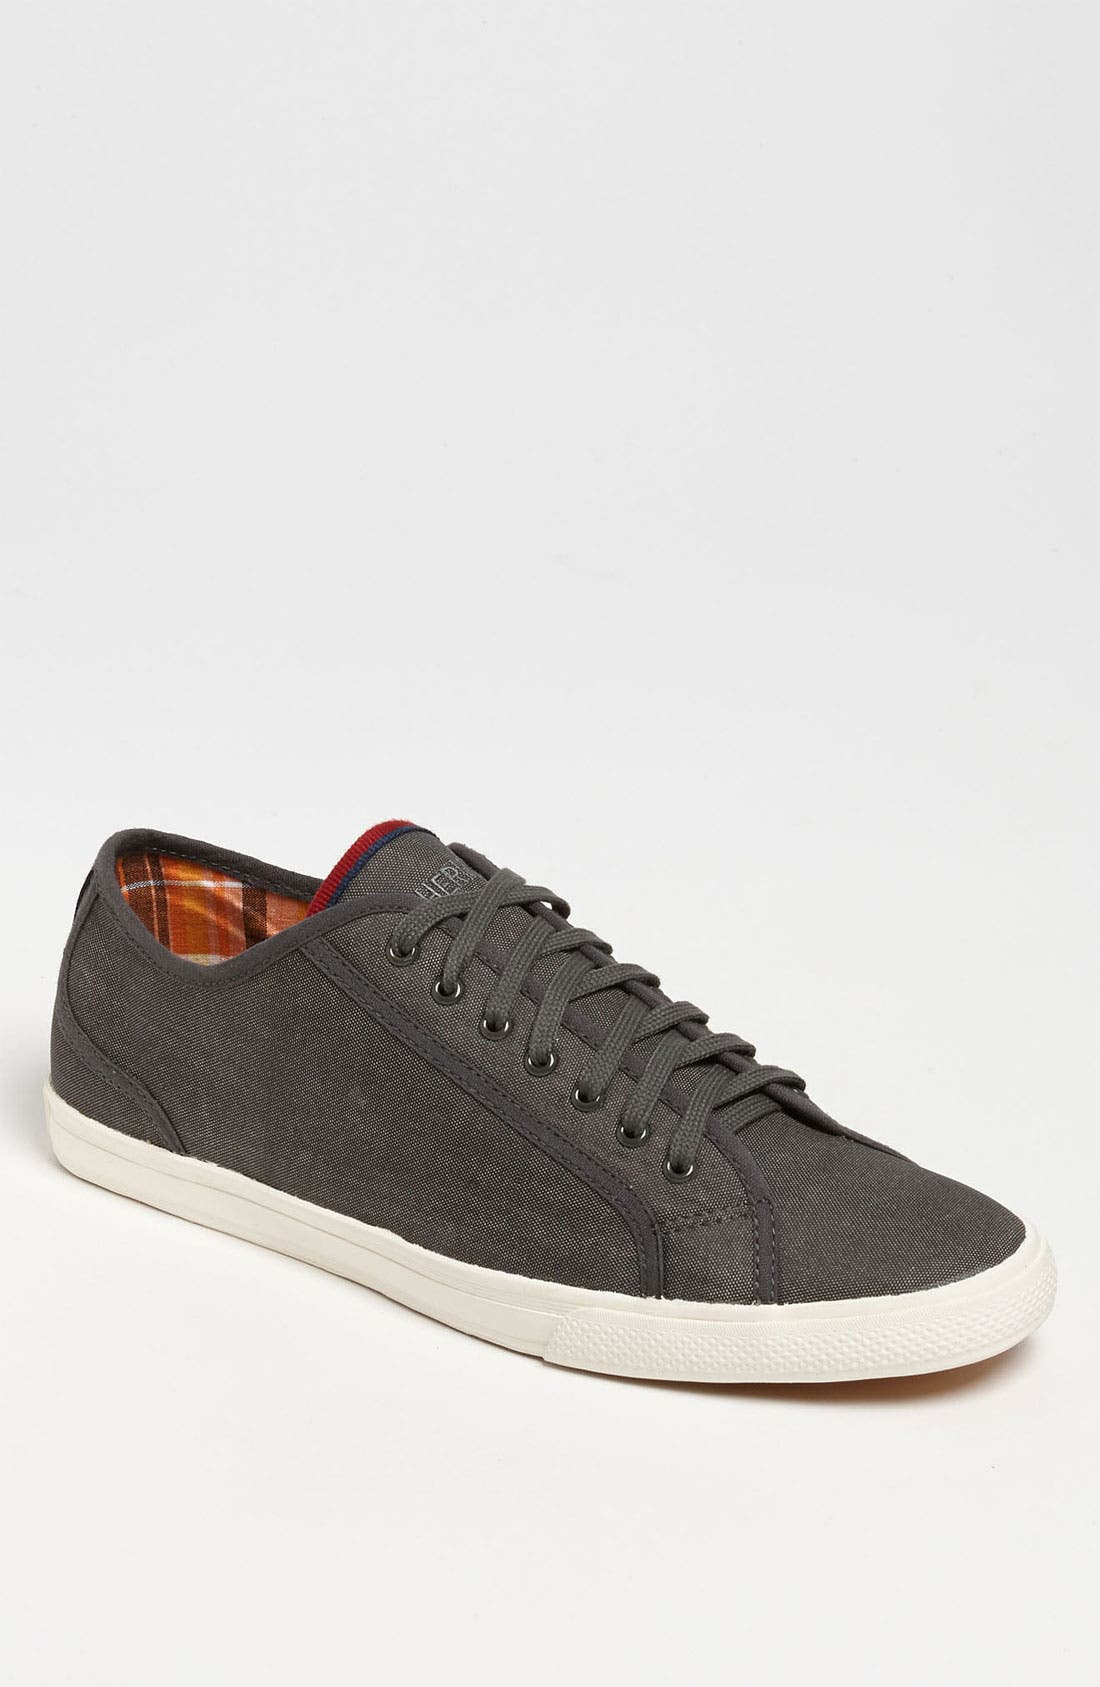 Main Image - Ben Sherman 'Breckon Low' Sneaker